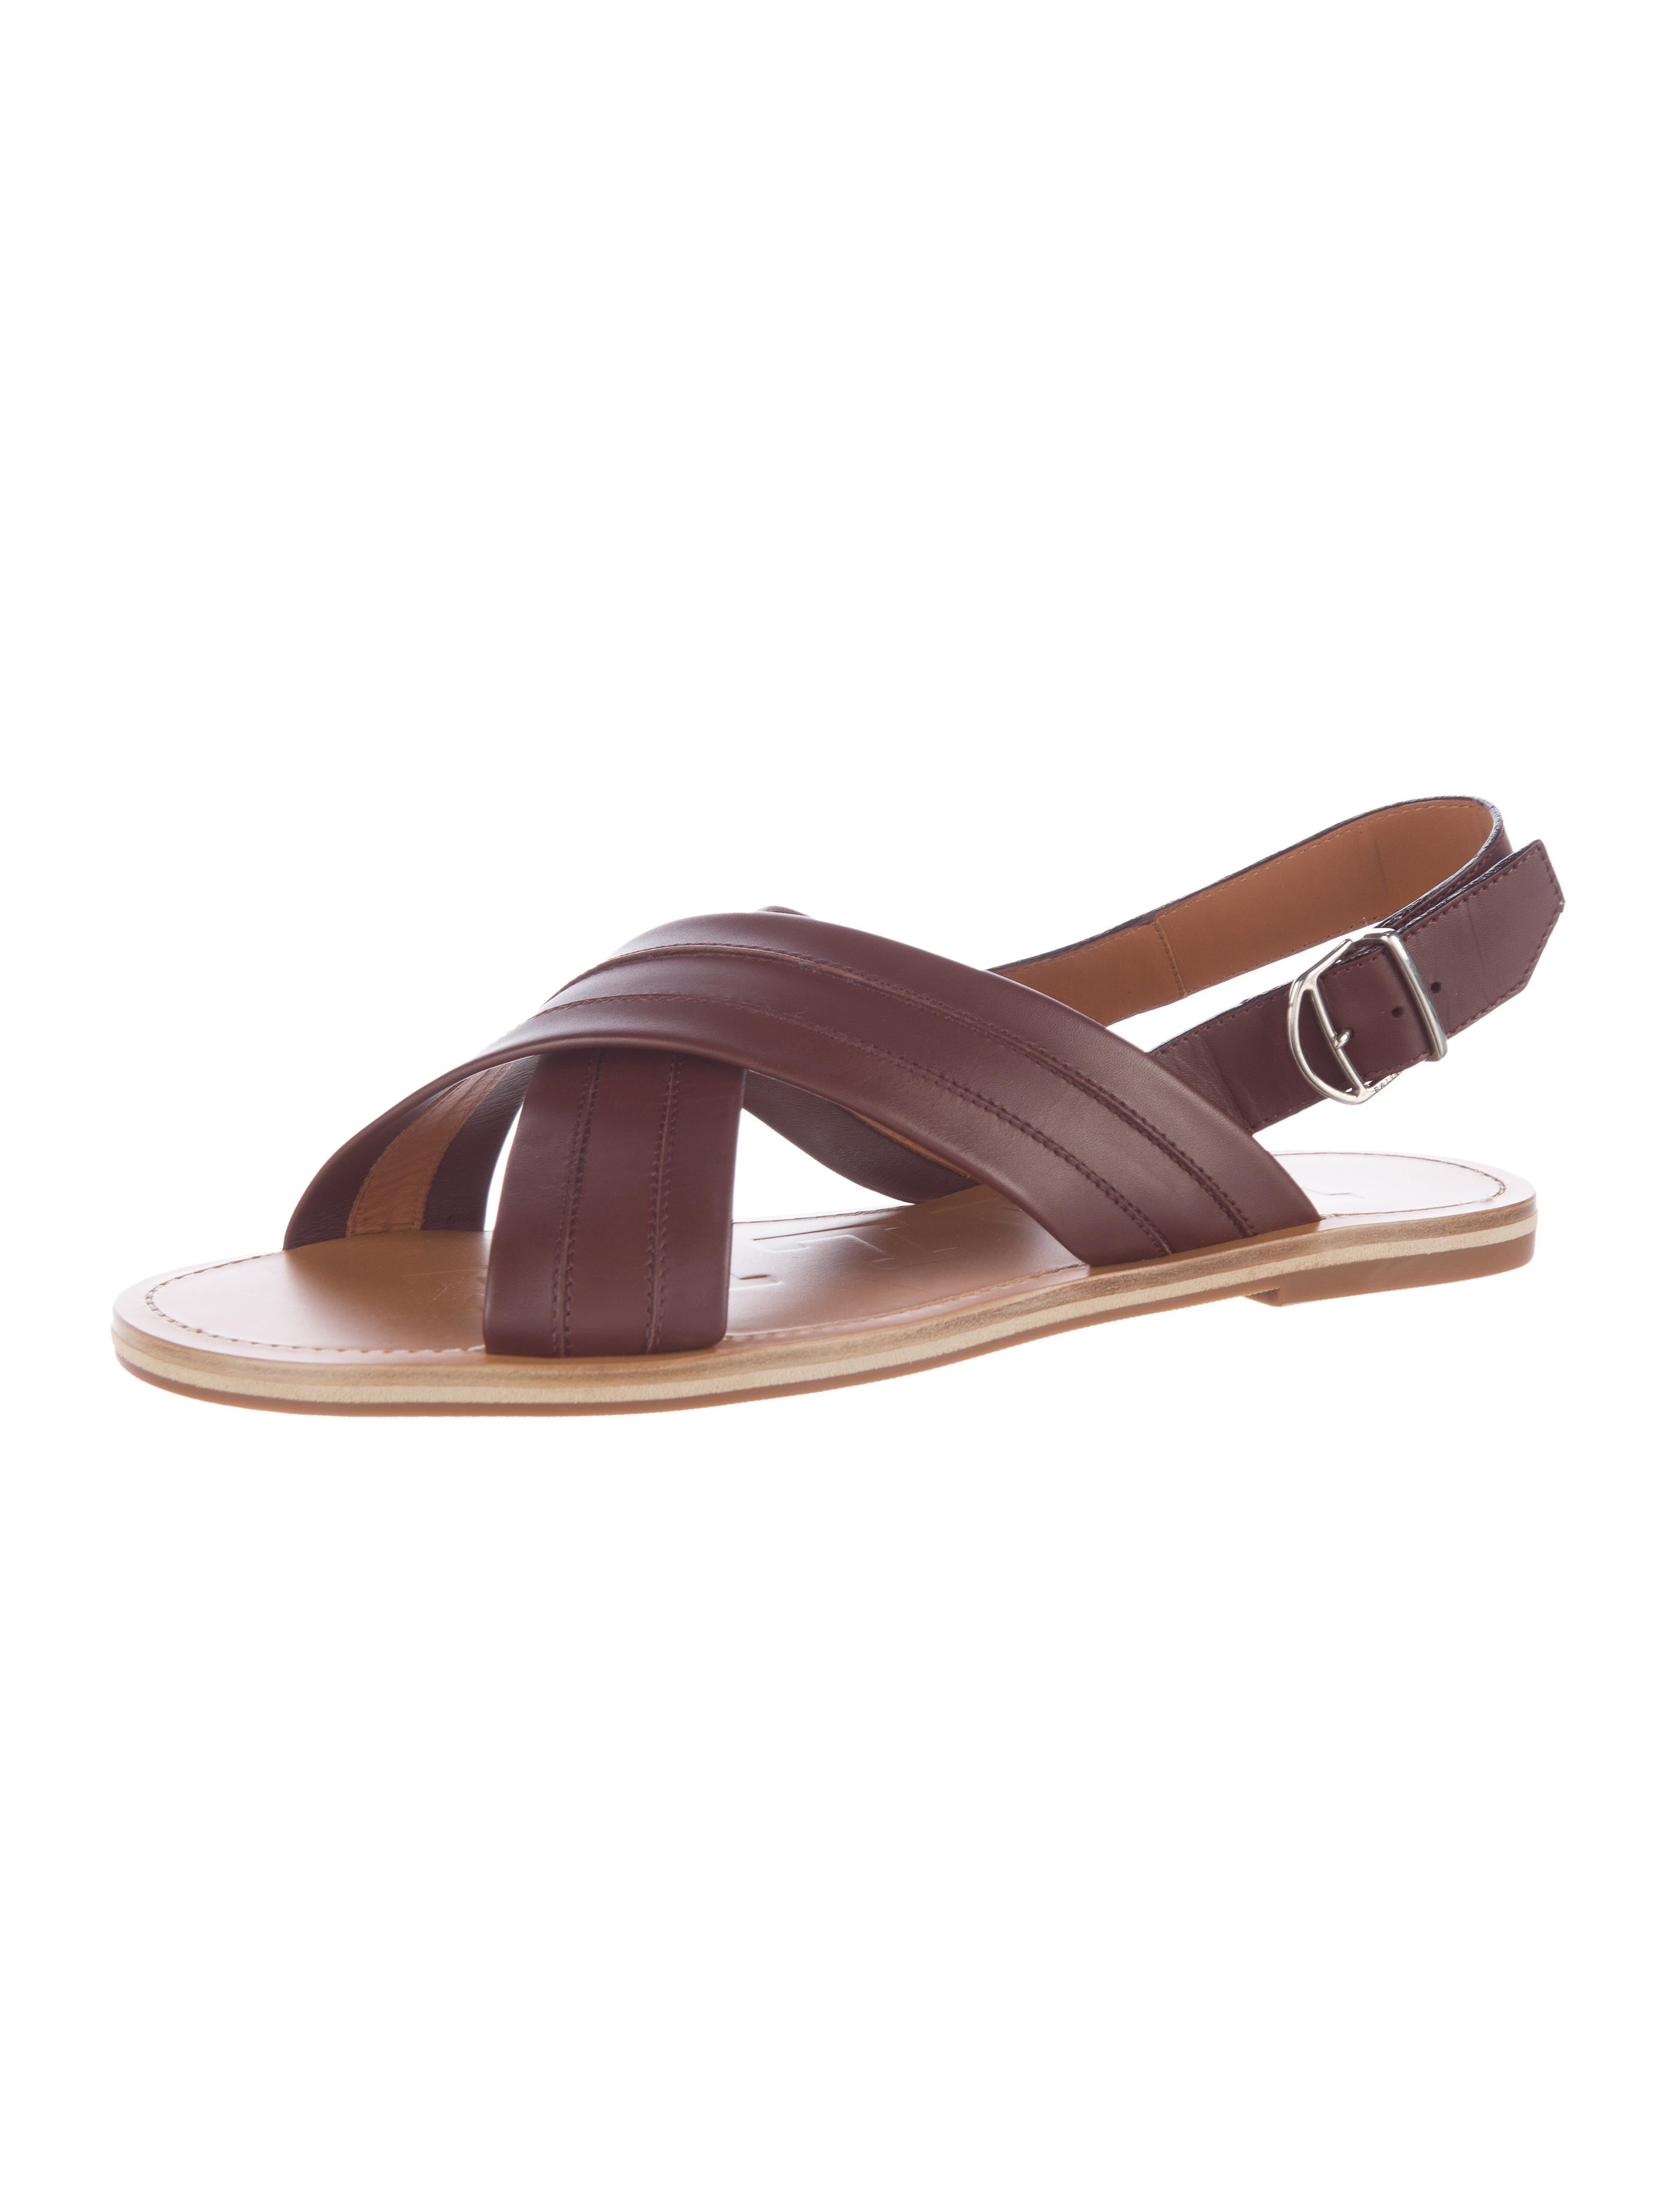 Brown Leather Dining Room Chairs Bally Leather Cross Strap Sandals Shoes Wb221556 The